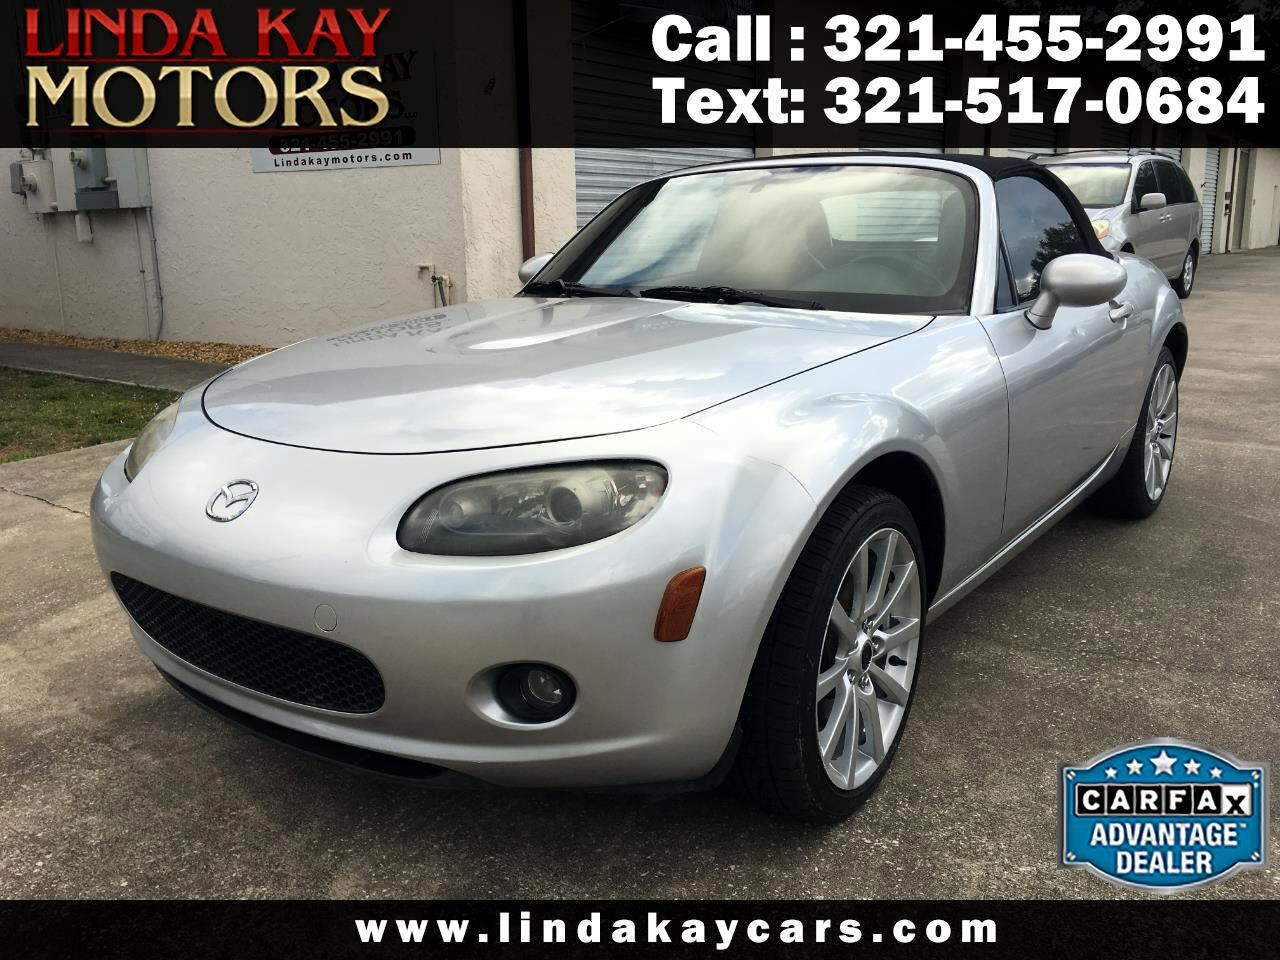 Mazda MX-5 Miata 2dr Conv Grand Touring Manual 2006